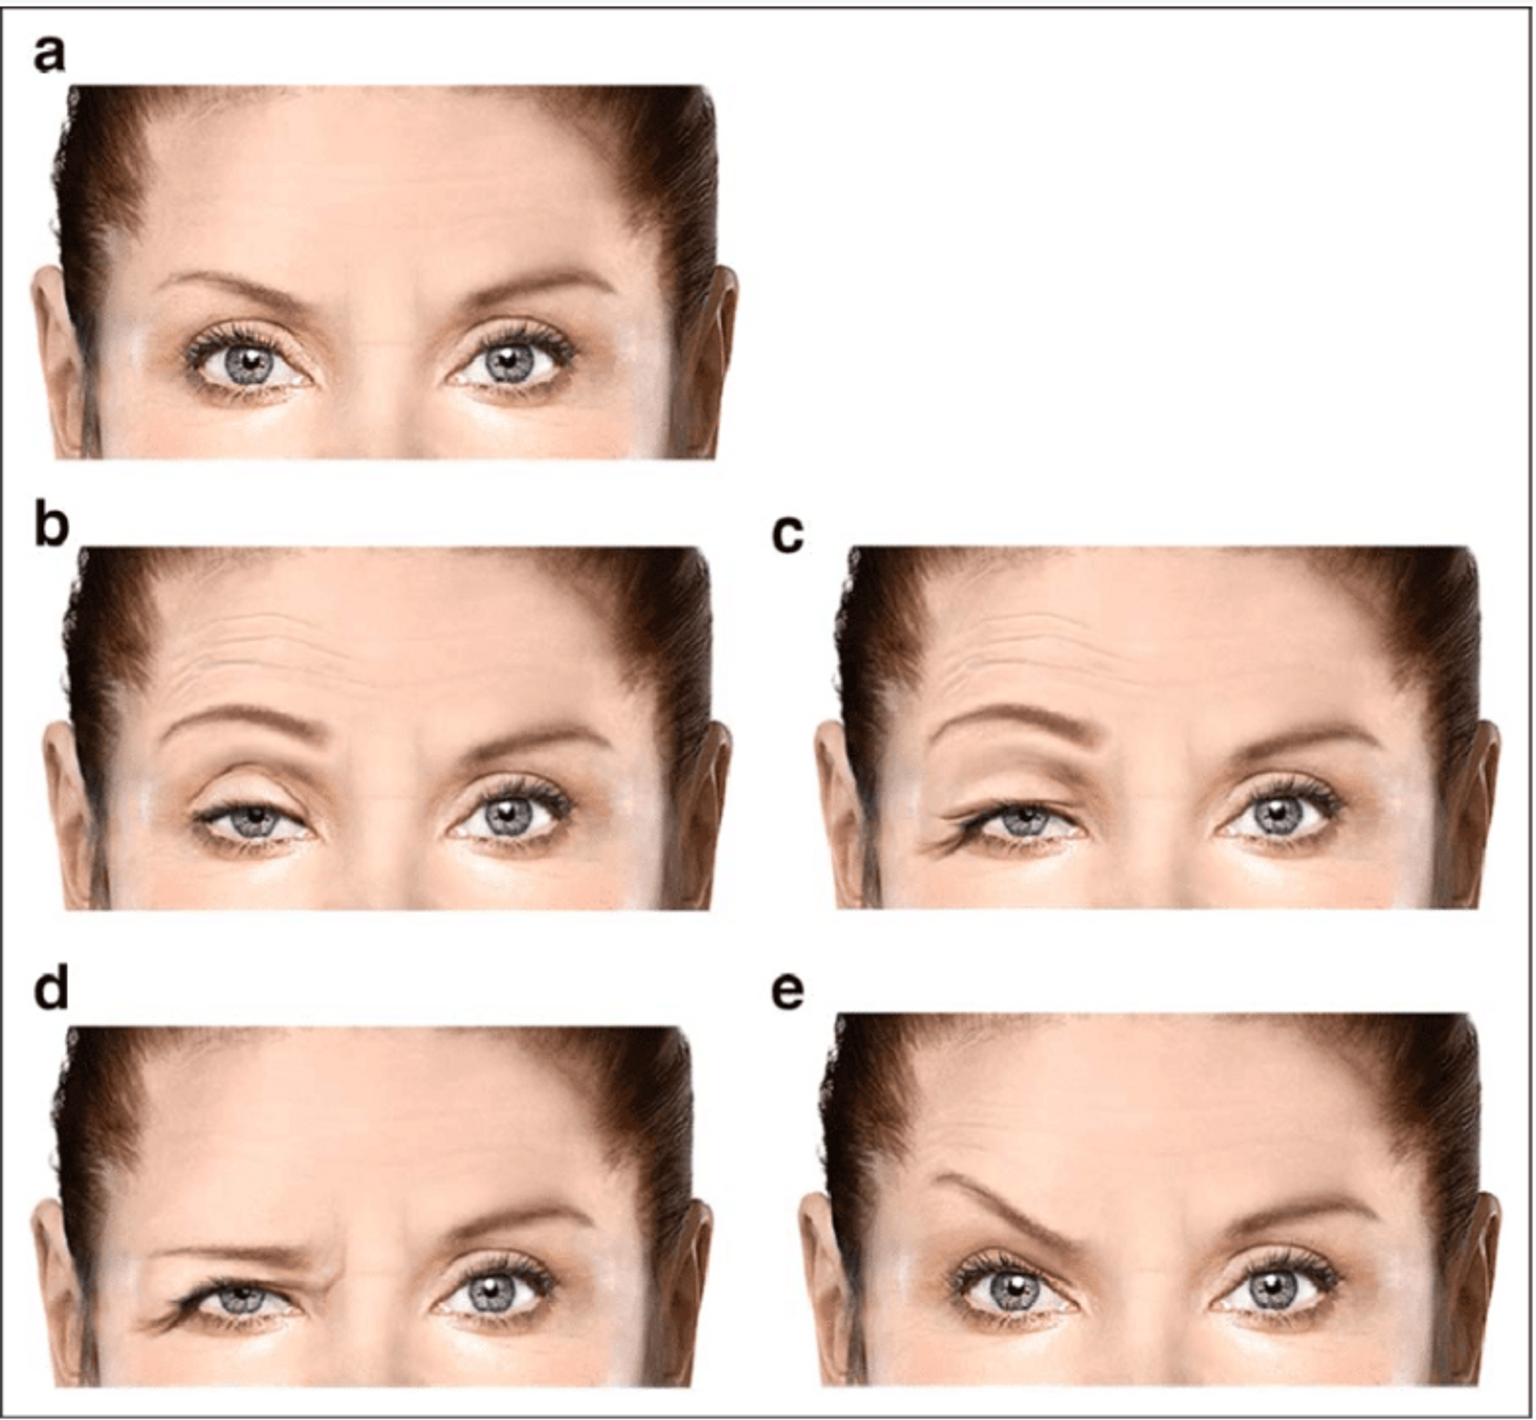 Image B) is an example of lid ptosis; image D) is an example of brow ptosis. Image credit: https://www.researchgate.net/figure/Various-depictions-of-ptosis-a-No-ptosis-b-Lid-ptosis-with-compensatory-frontal_fig2_315827436